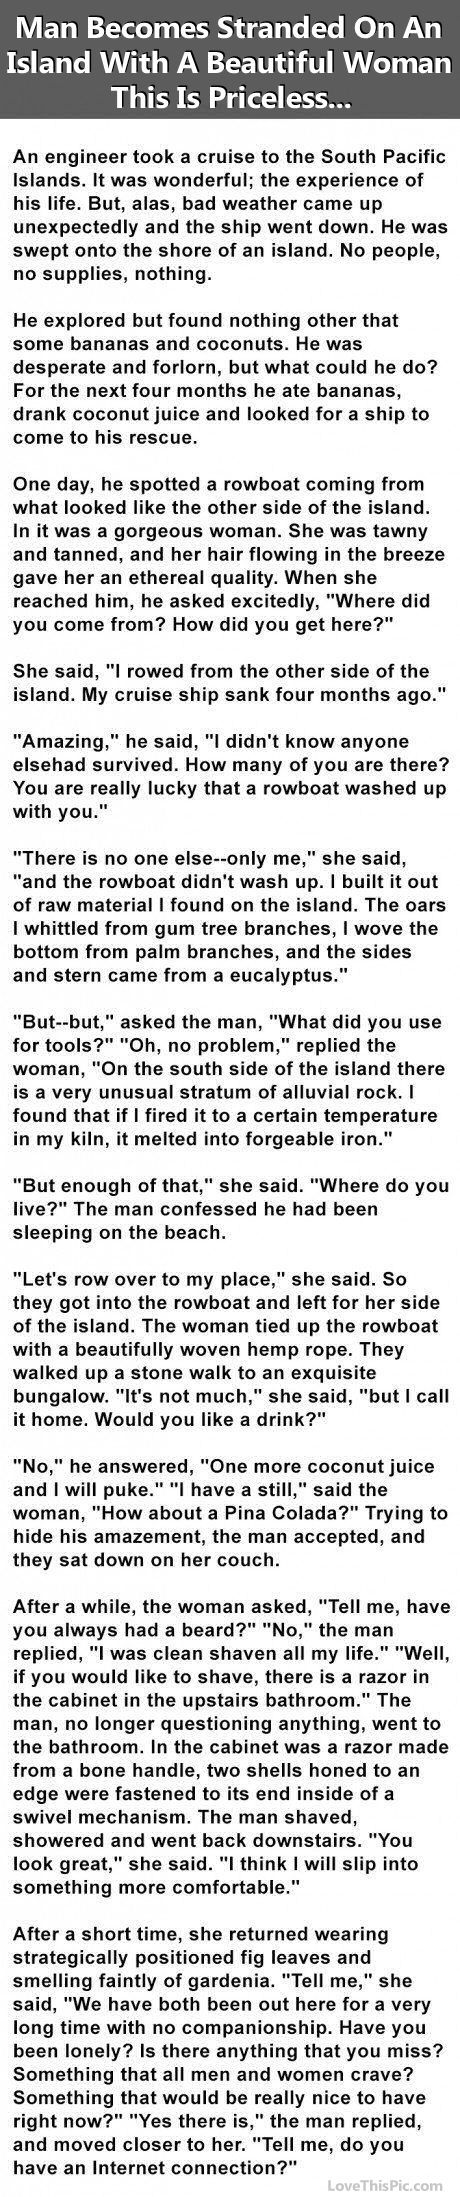 Man Becomes Stranded On An Island With A Beautiful Woman This Is Priceless funny jokes story lol funny quote funny quotes funny sayings joke hilarious humor stories funny jokes adult jokes